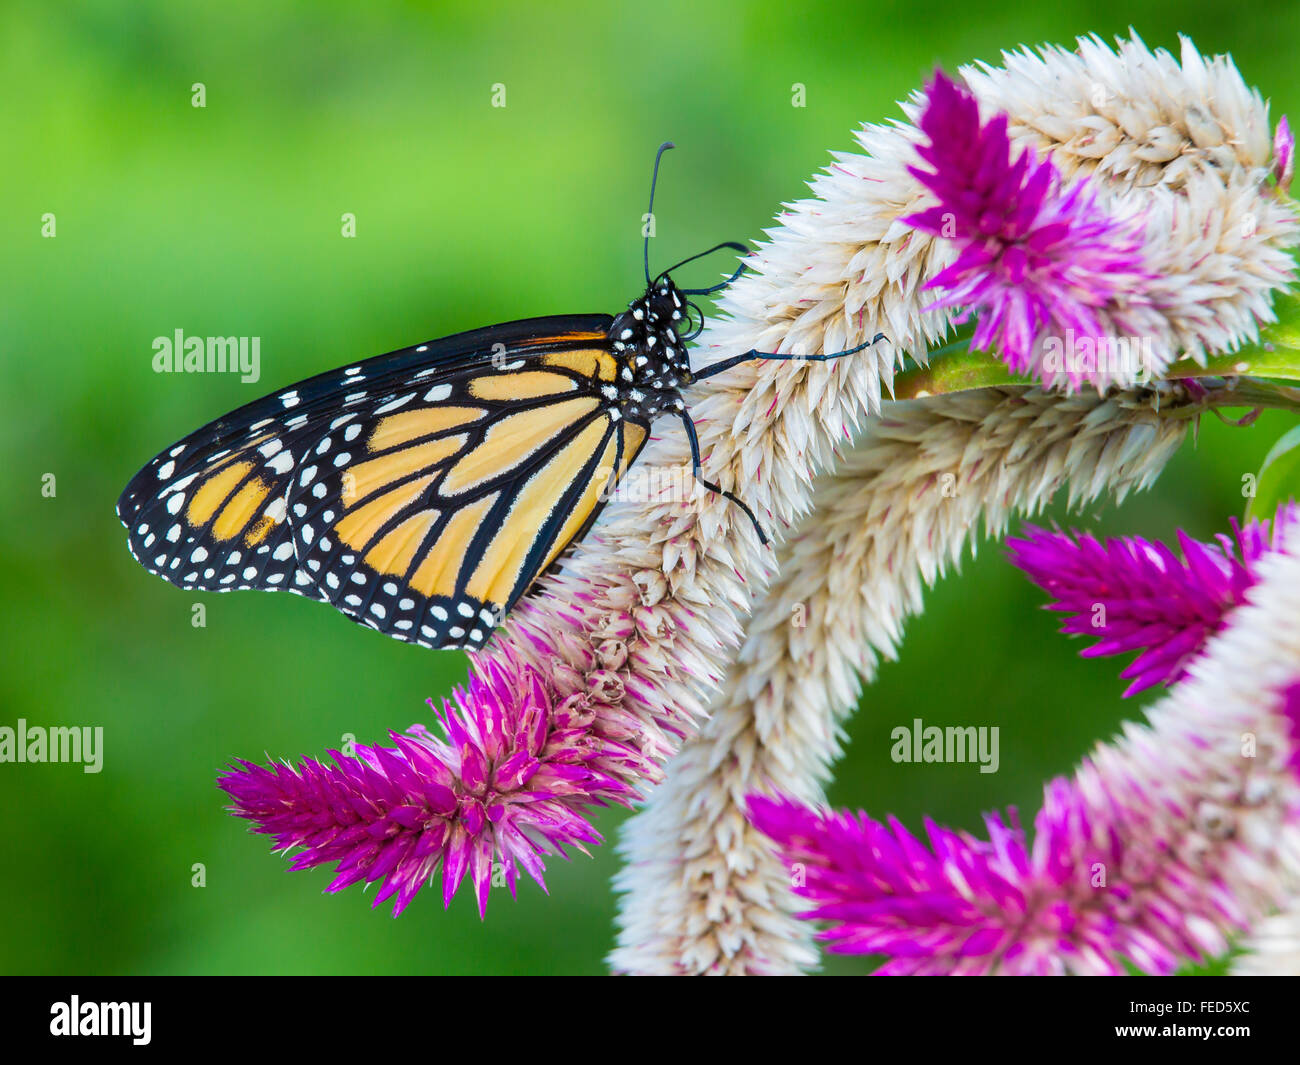 Closeup of Monarch Butterfly Danaus plexippus on a flower at The Butterfly Estates in Fort Myers Florida - Stock Image